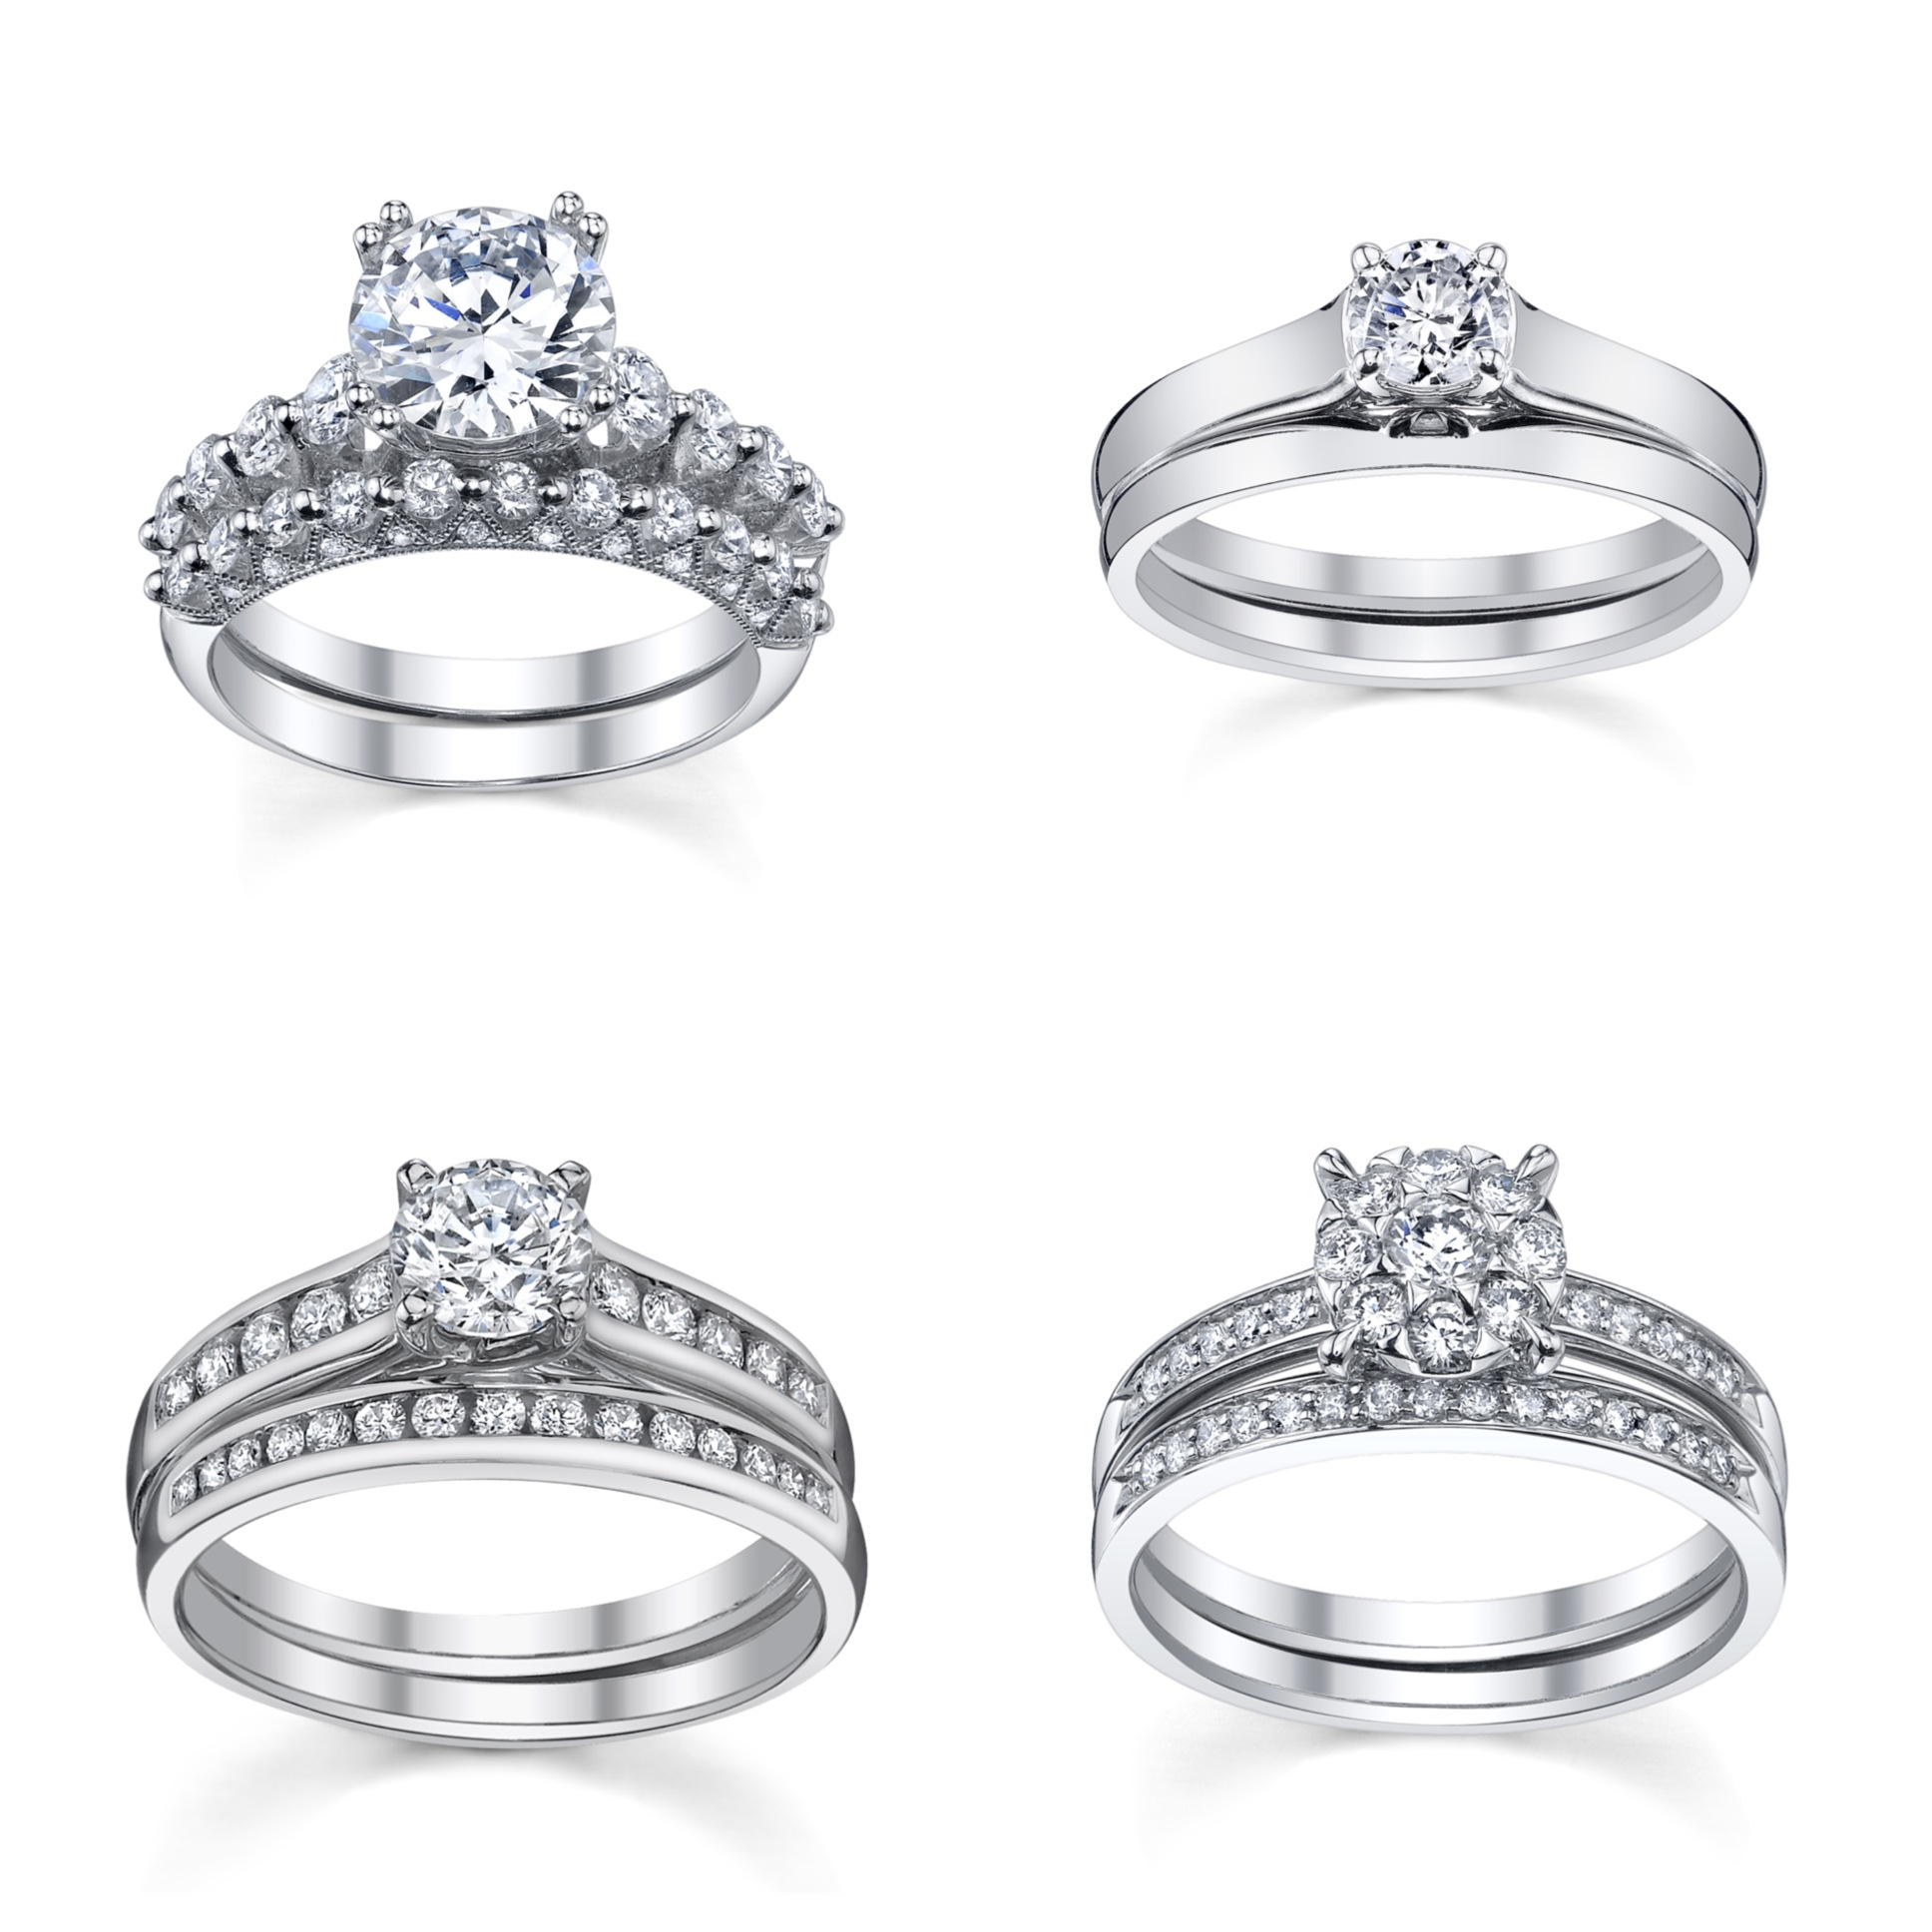 wedding rings of collection band halo inspired view within set engagement ctw bridal best vintage